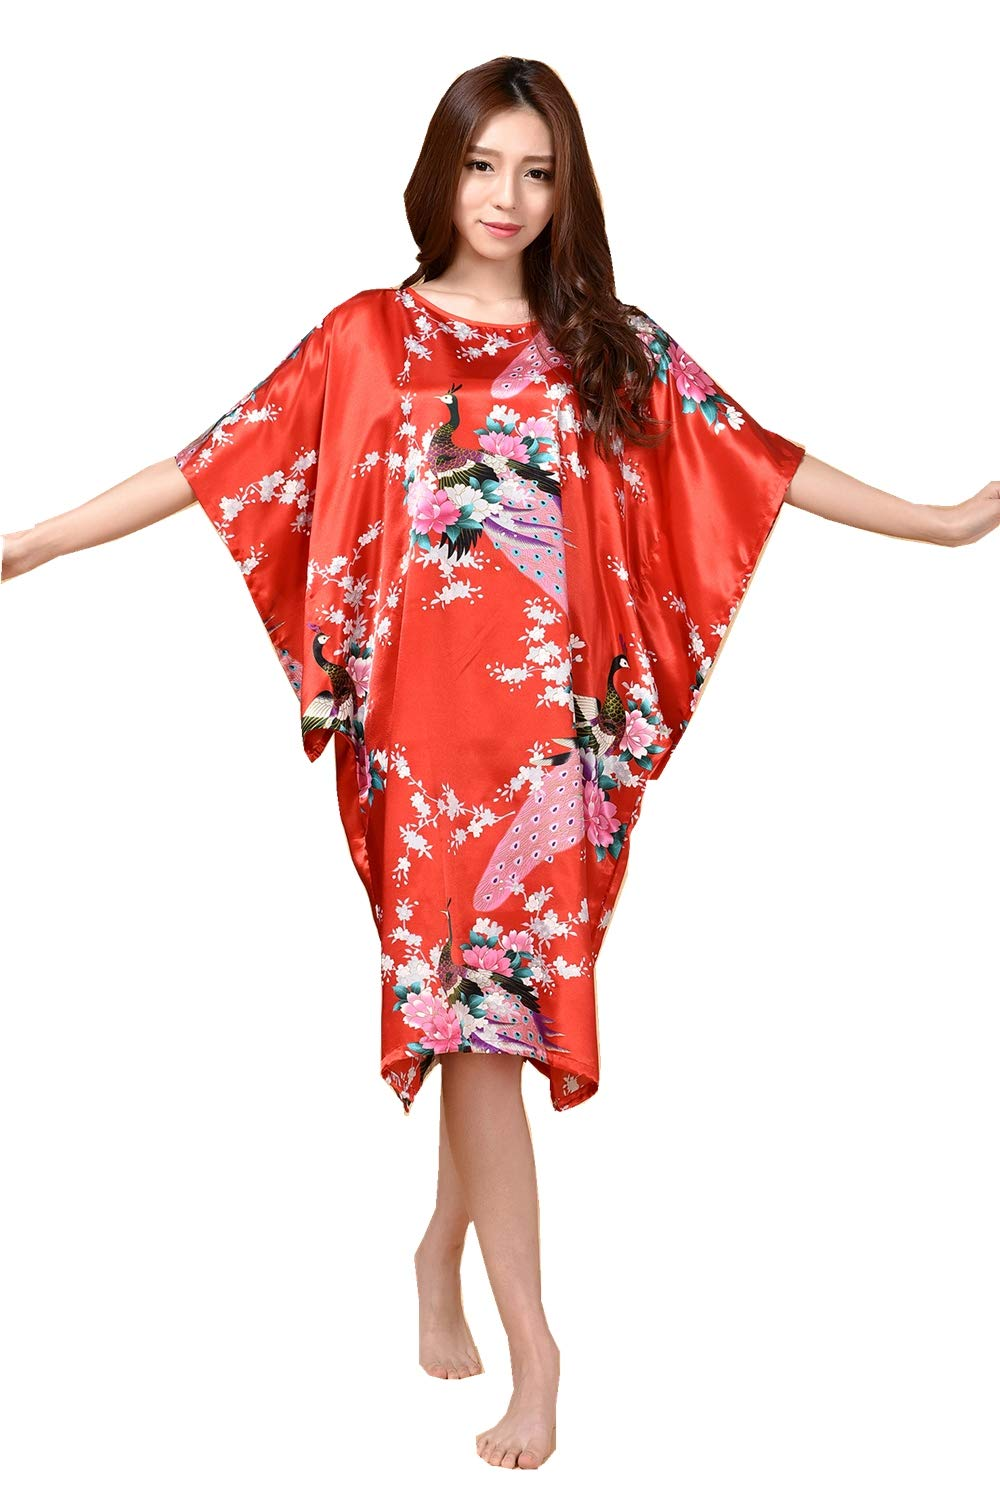 6 Women's Nightie Long  Satin Printed Round Neck Loose Dressing Dress Plus Size Nightshirt Soft Home TShirt Dress,11